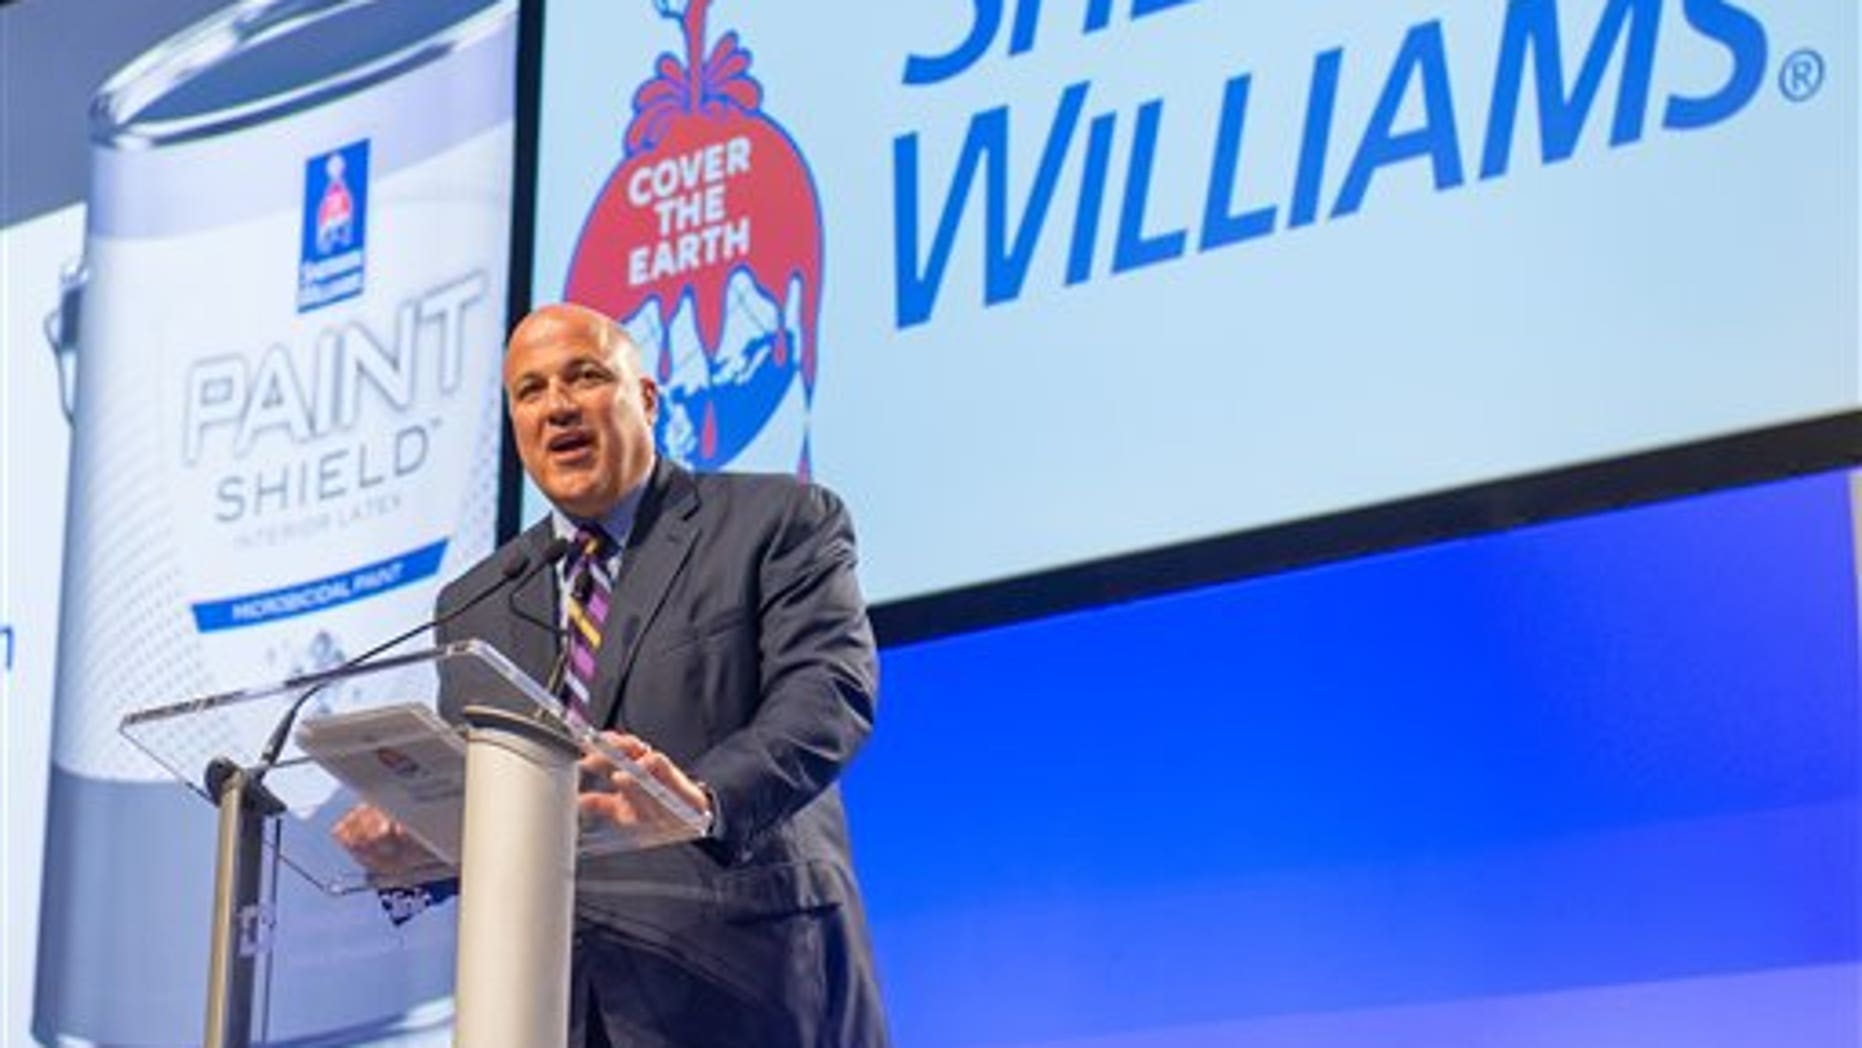 John Morikis, President, COO and CEO-elect of Sherwin-Williams introduces Paint Shield at the 2015 Medical Innovation Summit on Wednesday, Oct. 28, 2015, in Cleveland. (Jason Miller/AP Images for Sherwin-Williams)